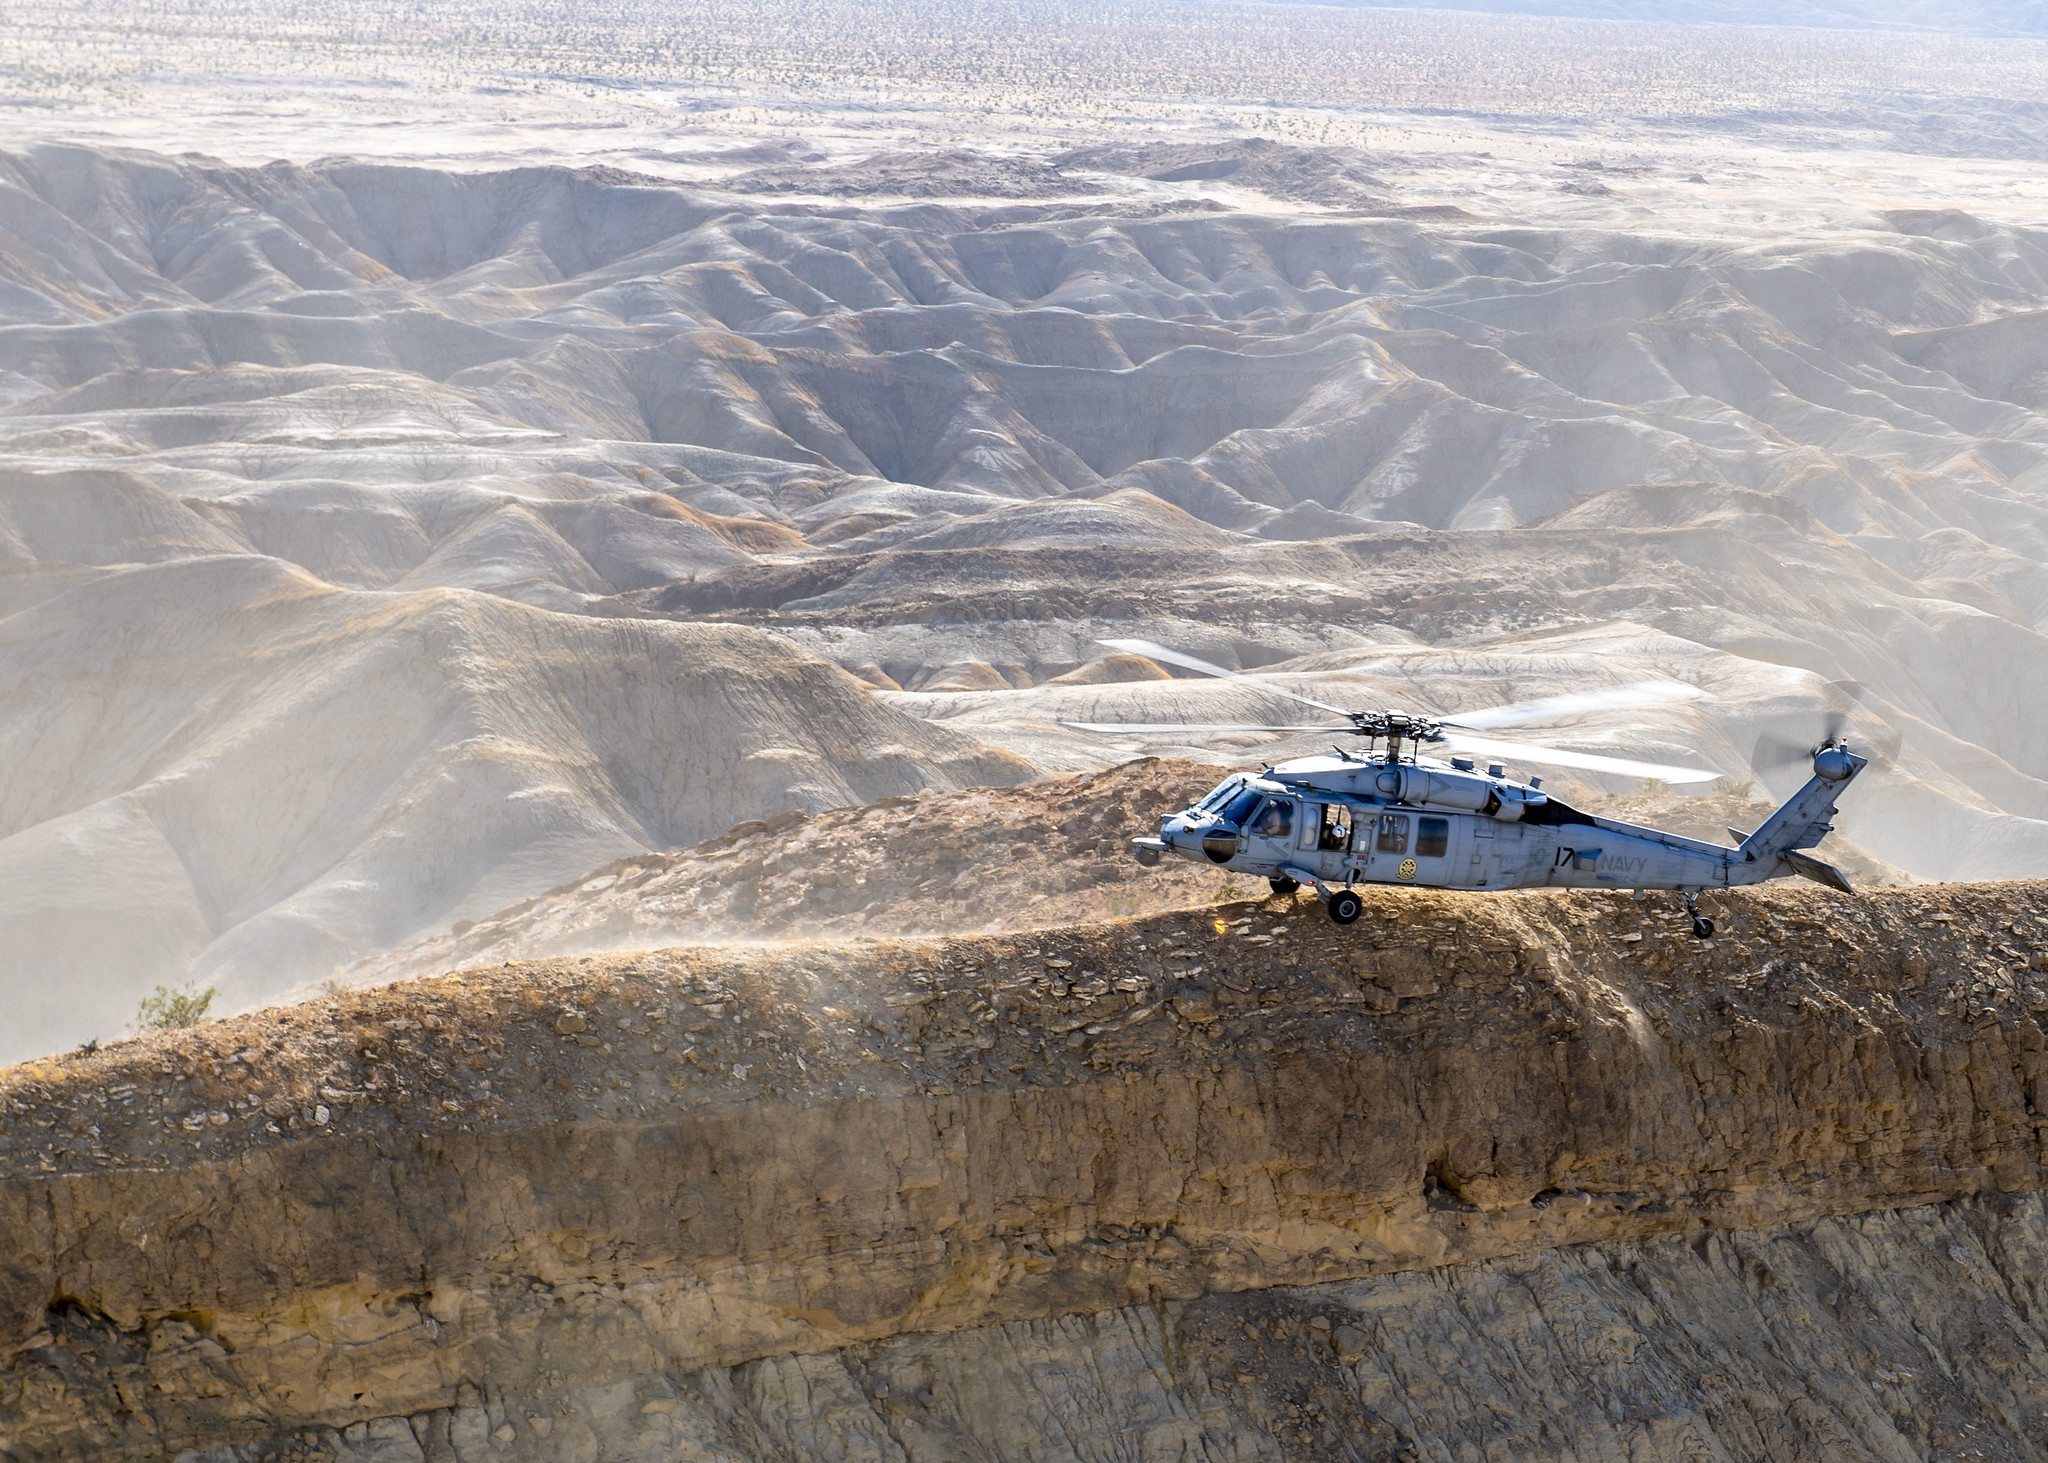 An MH-60S Sea Hawk helicopter stationed in San Diego practices terrain flight tactical landings on Oct. 1, 2020, during Helicopter Advanced Readiness Program (HARP) training at Naval Air Facility El Centro, Calif. (MC2 Ryan M. Breeden/Navy)